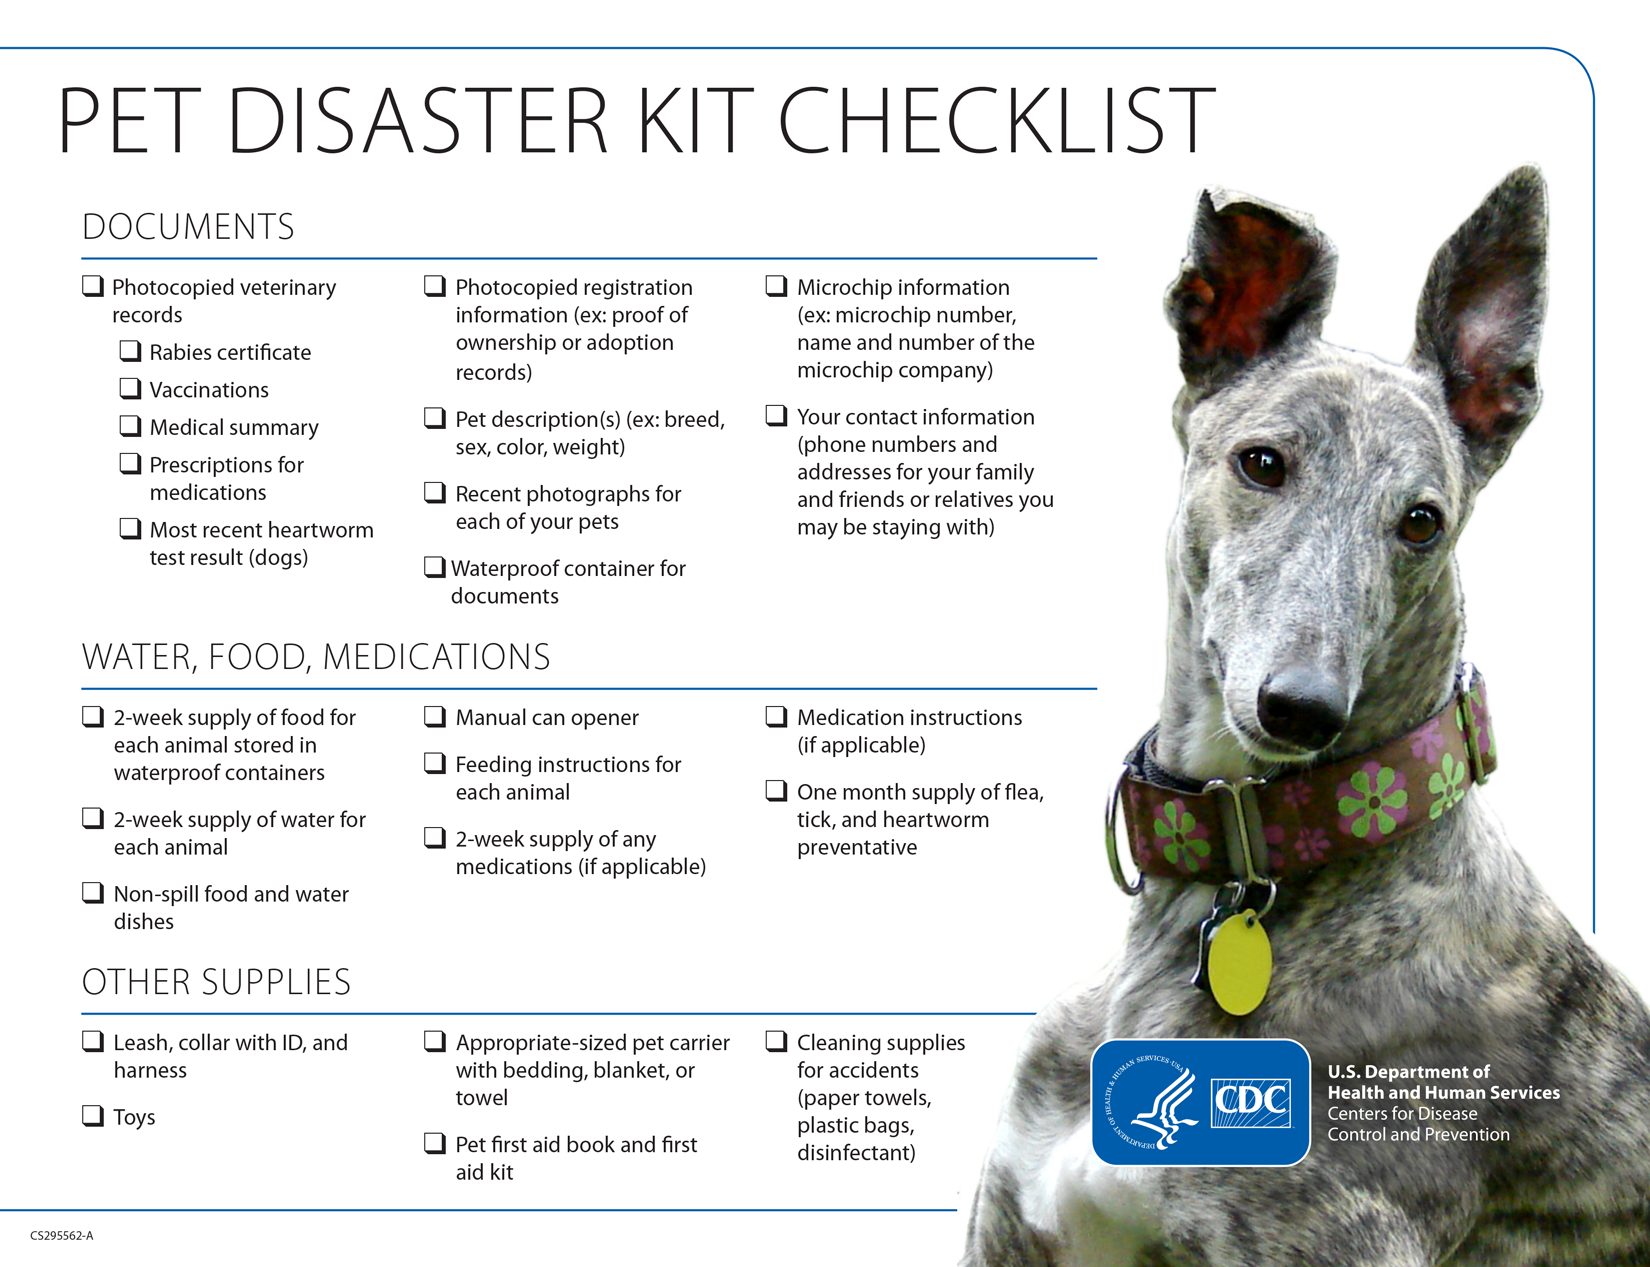 Pet Disaster Kit Checklist for Dogs